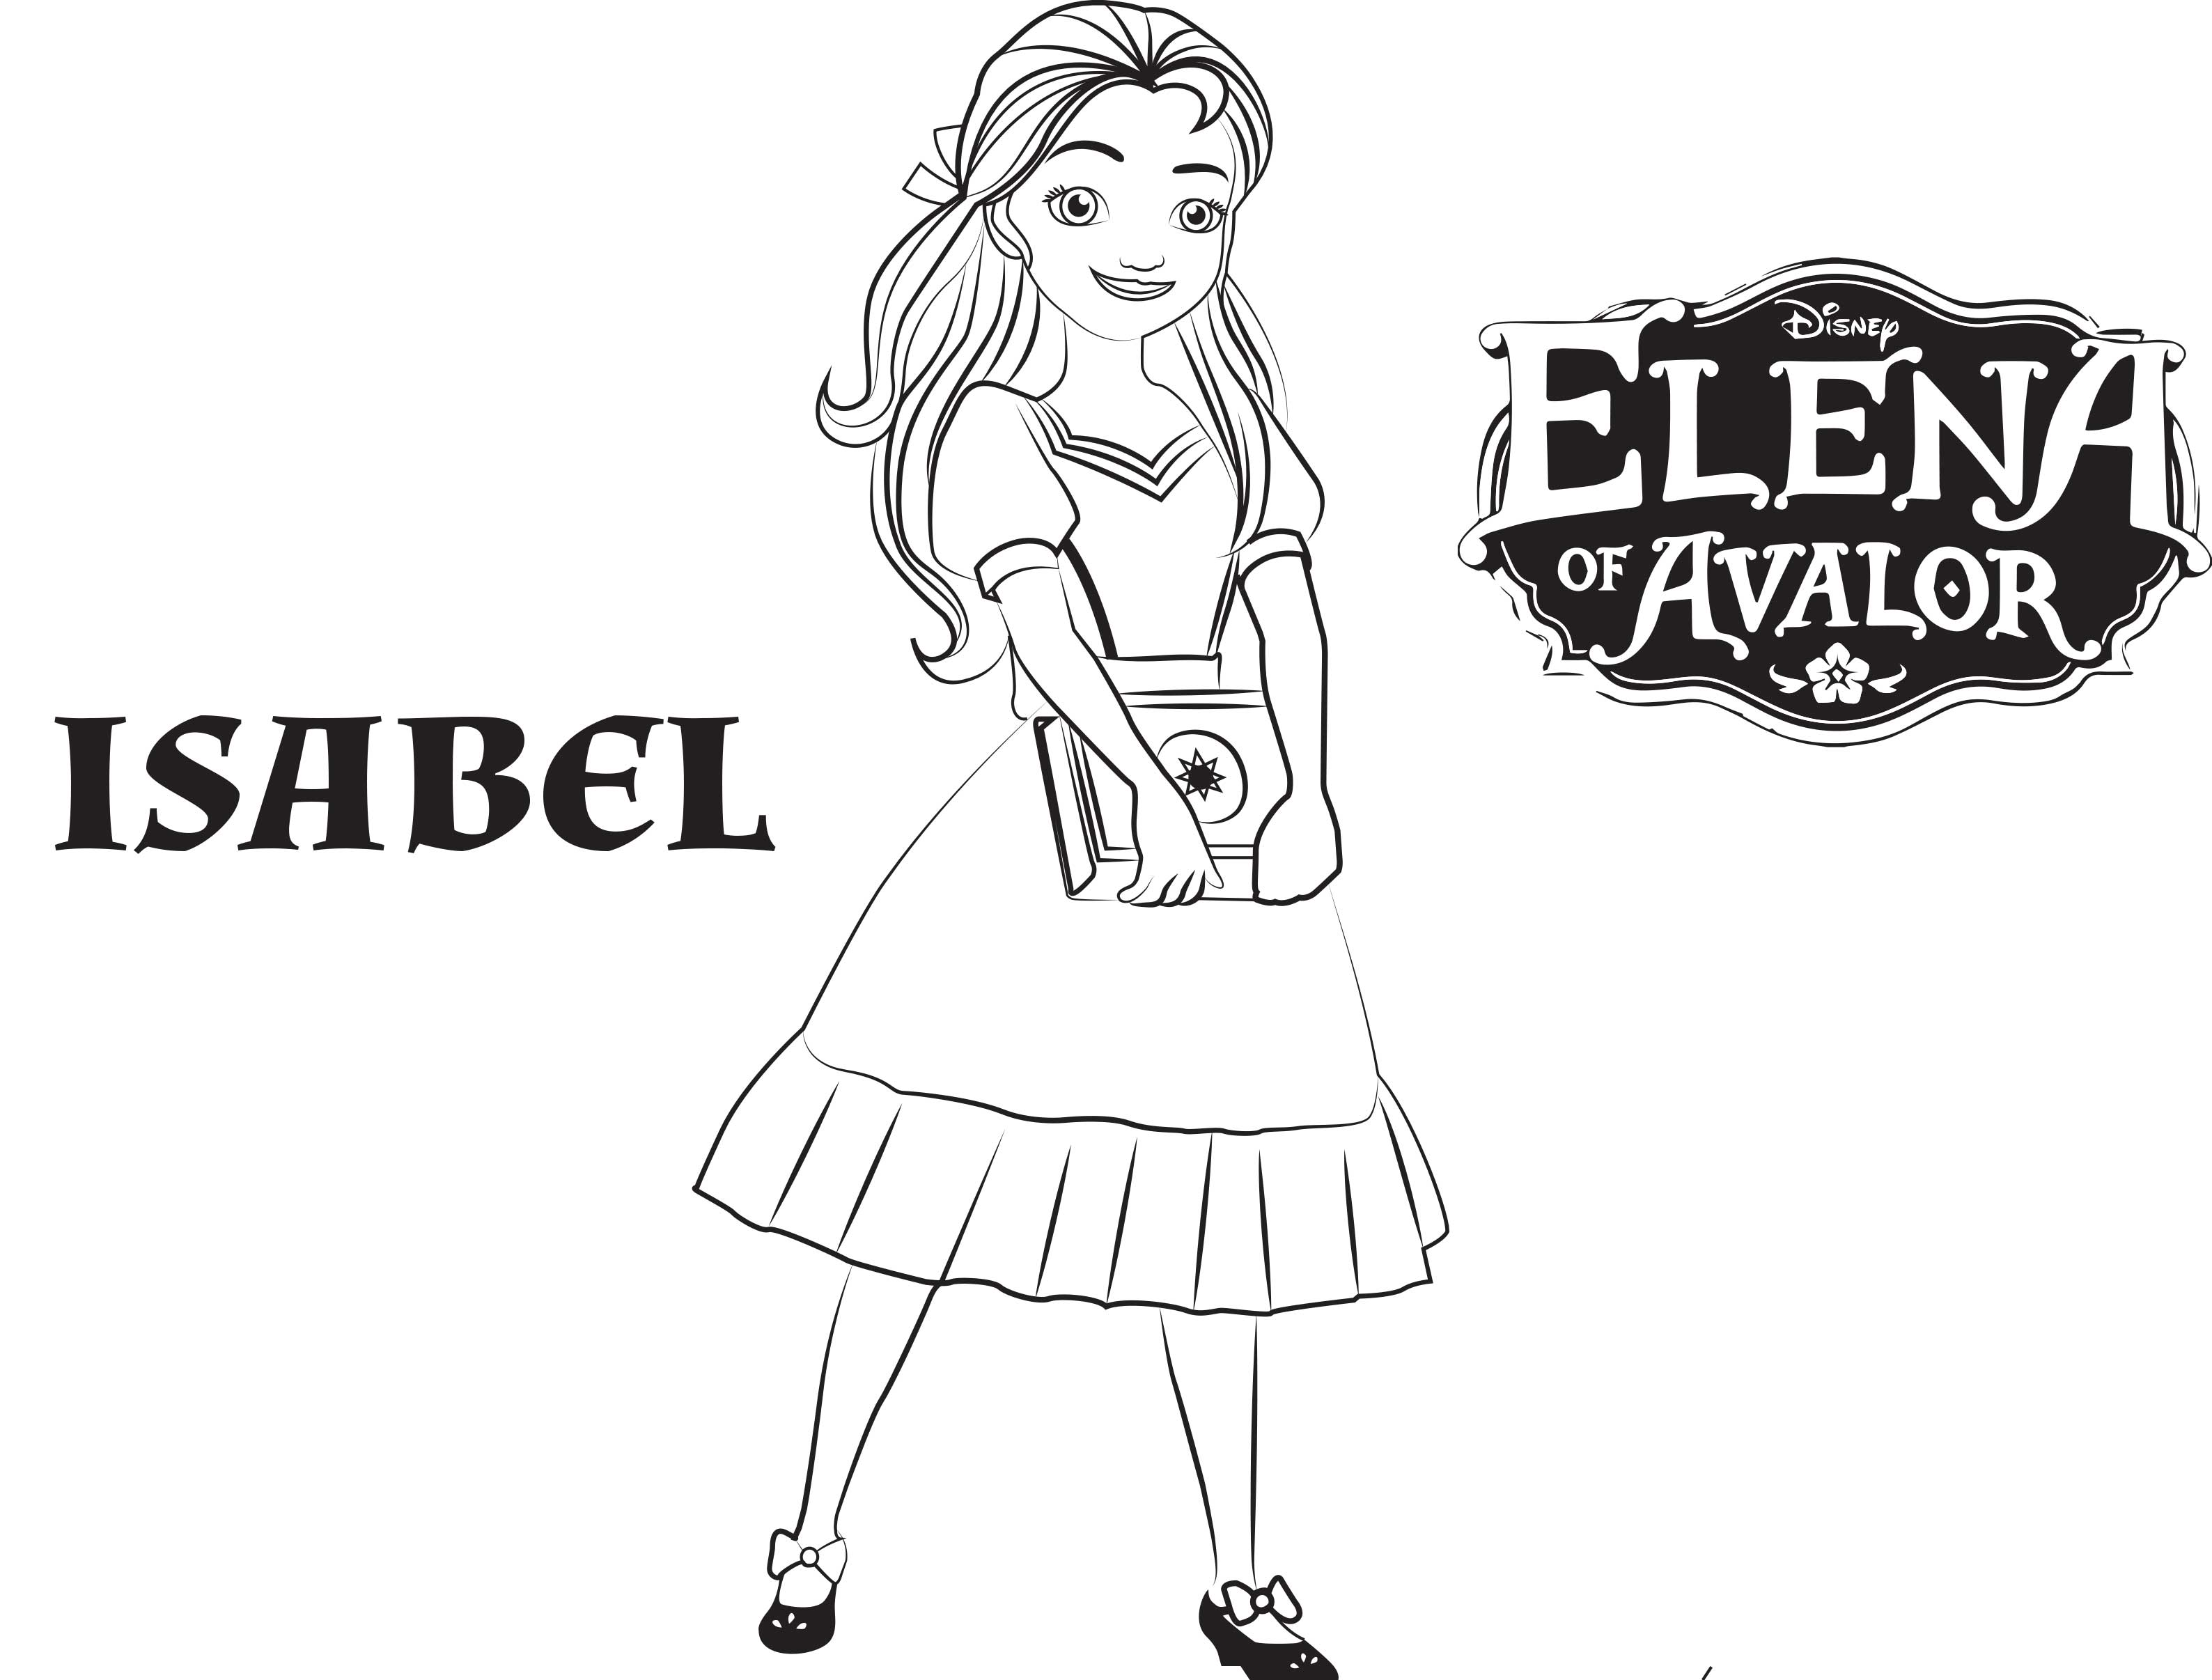 picture about Elena of Avalor Coloring Pages Printable referred to as Elena avalor in direction of coloration for youngsters - Elena Avalor Little ones